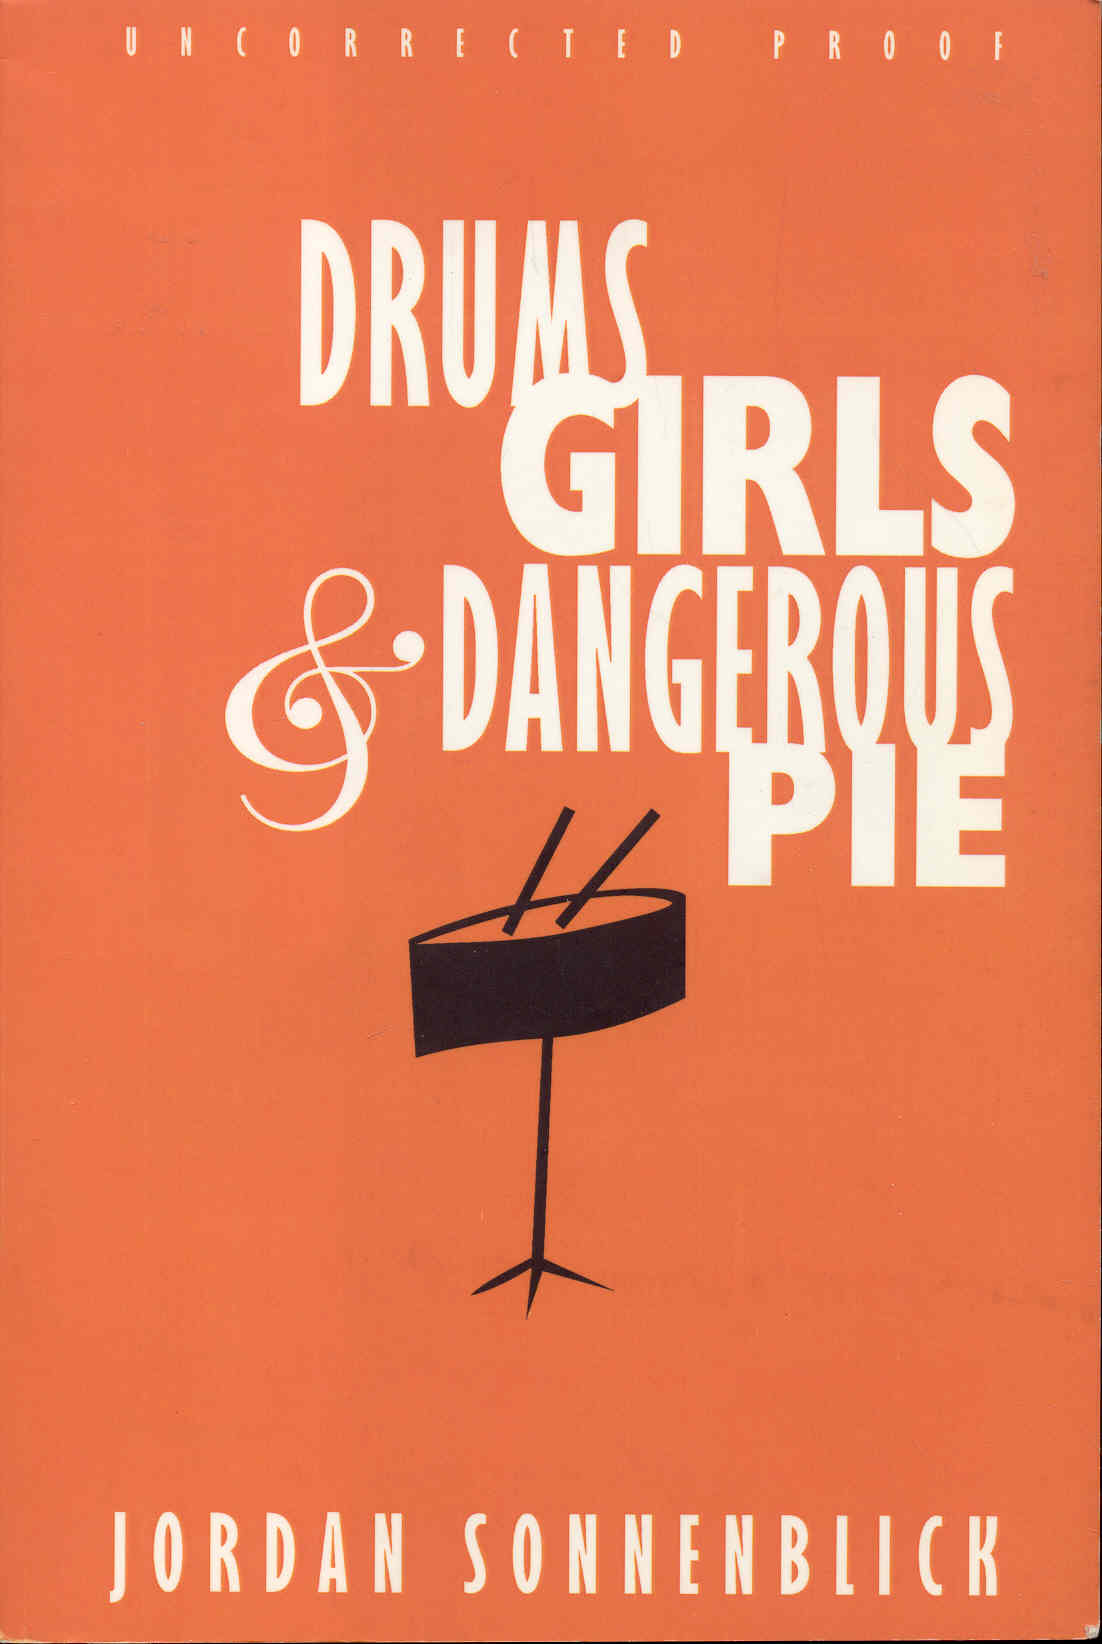 Image for Drums, Girls & Dangerous Pie